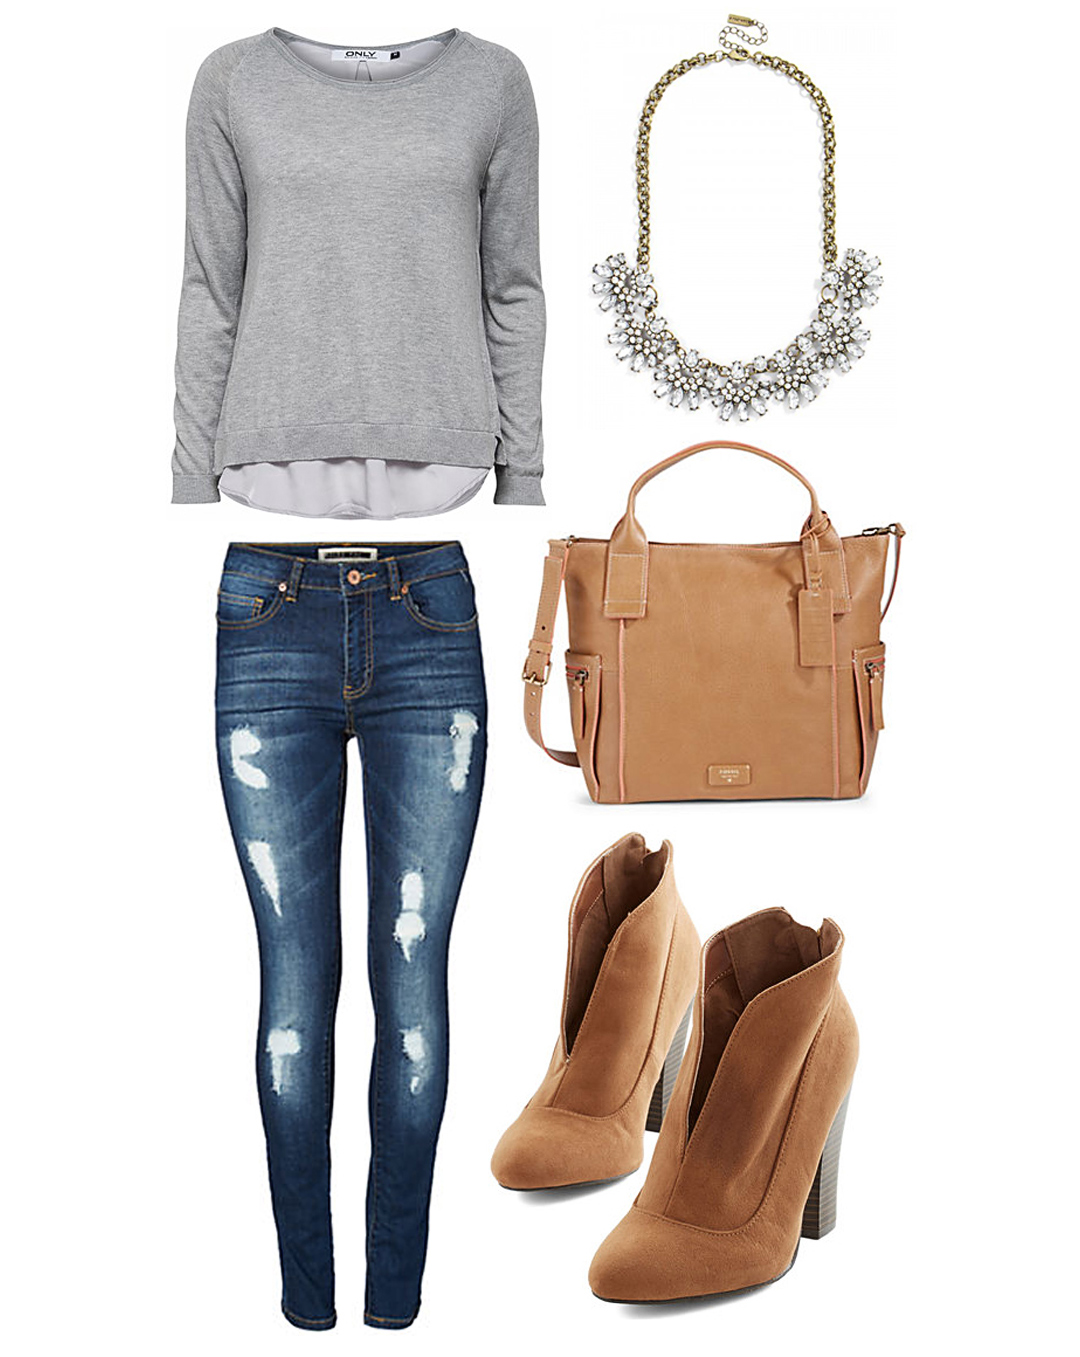 5-Item-Casual-Outfit